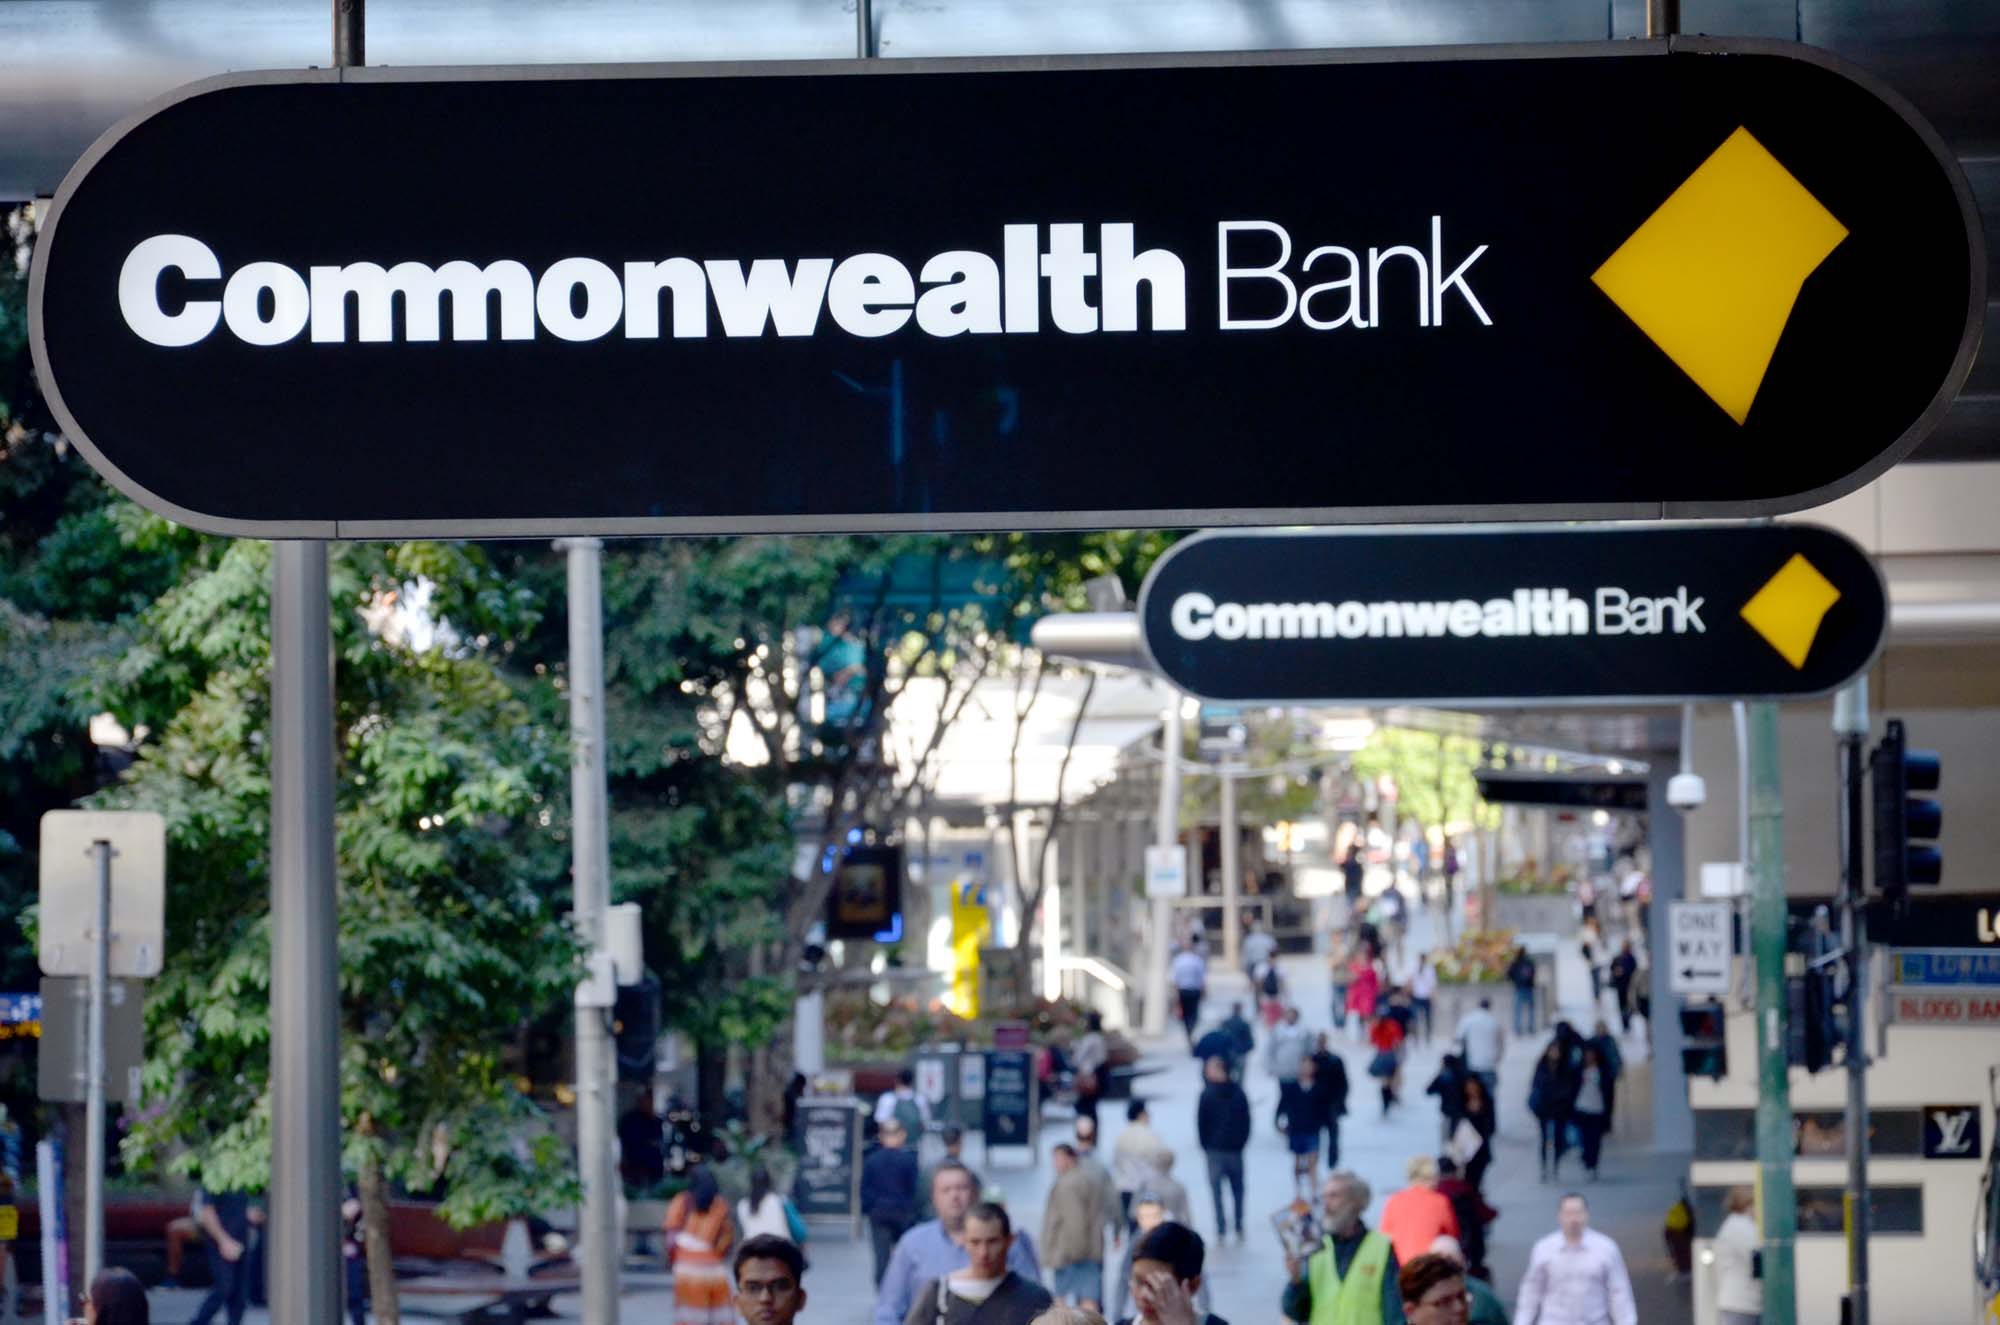 CBA execs lose bonuses over AUSTRAC case